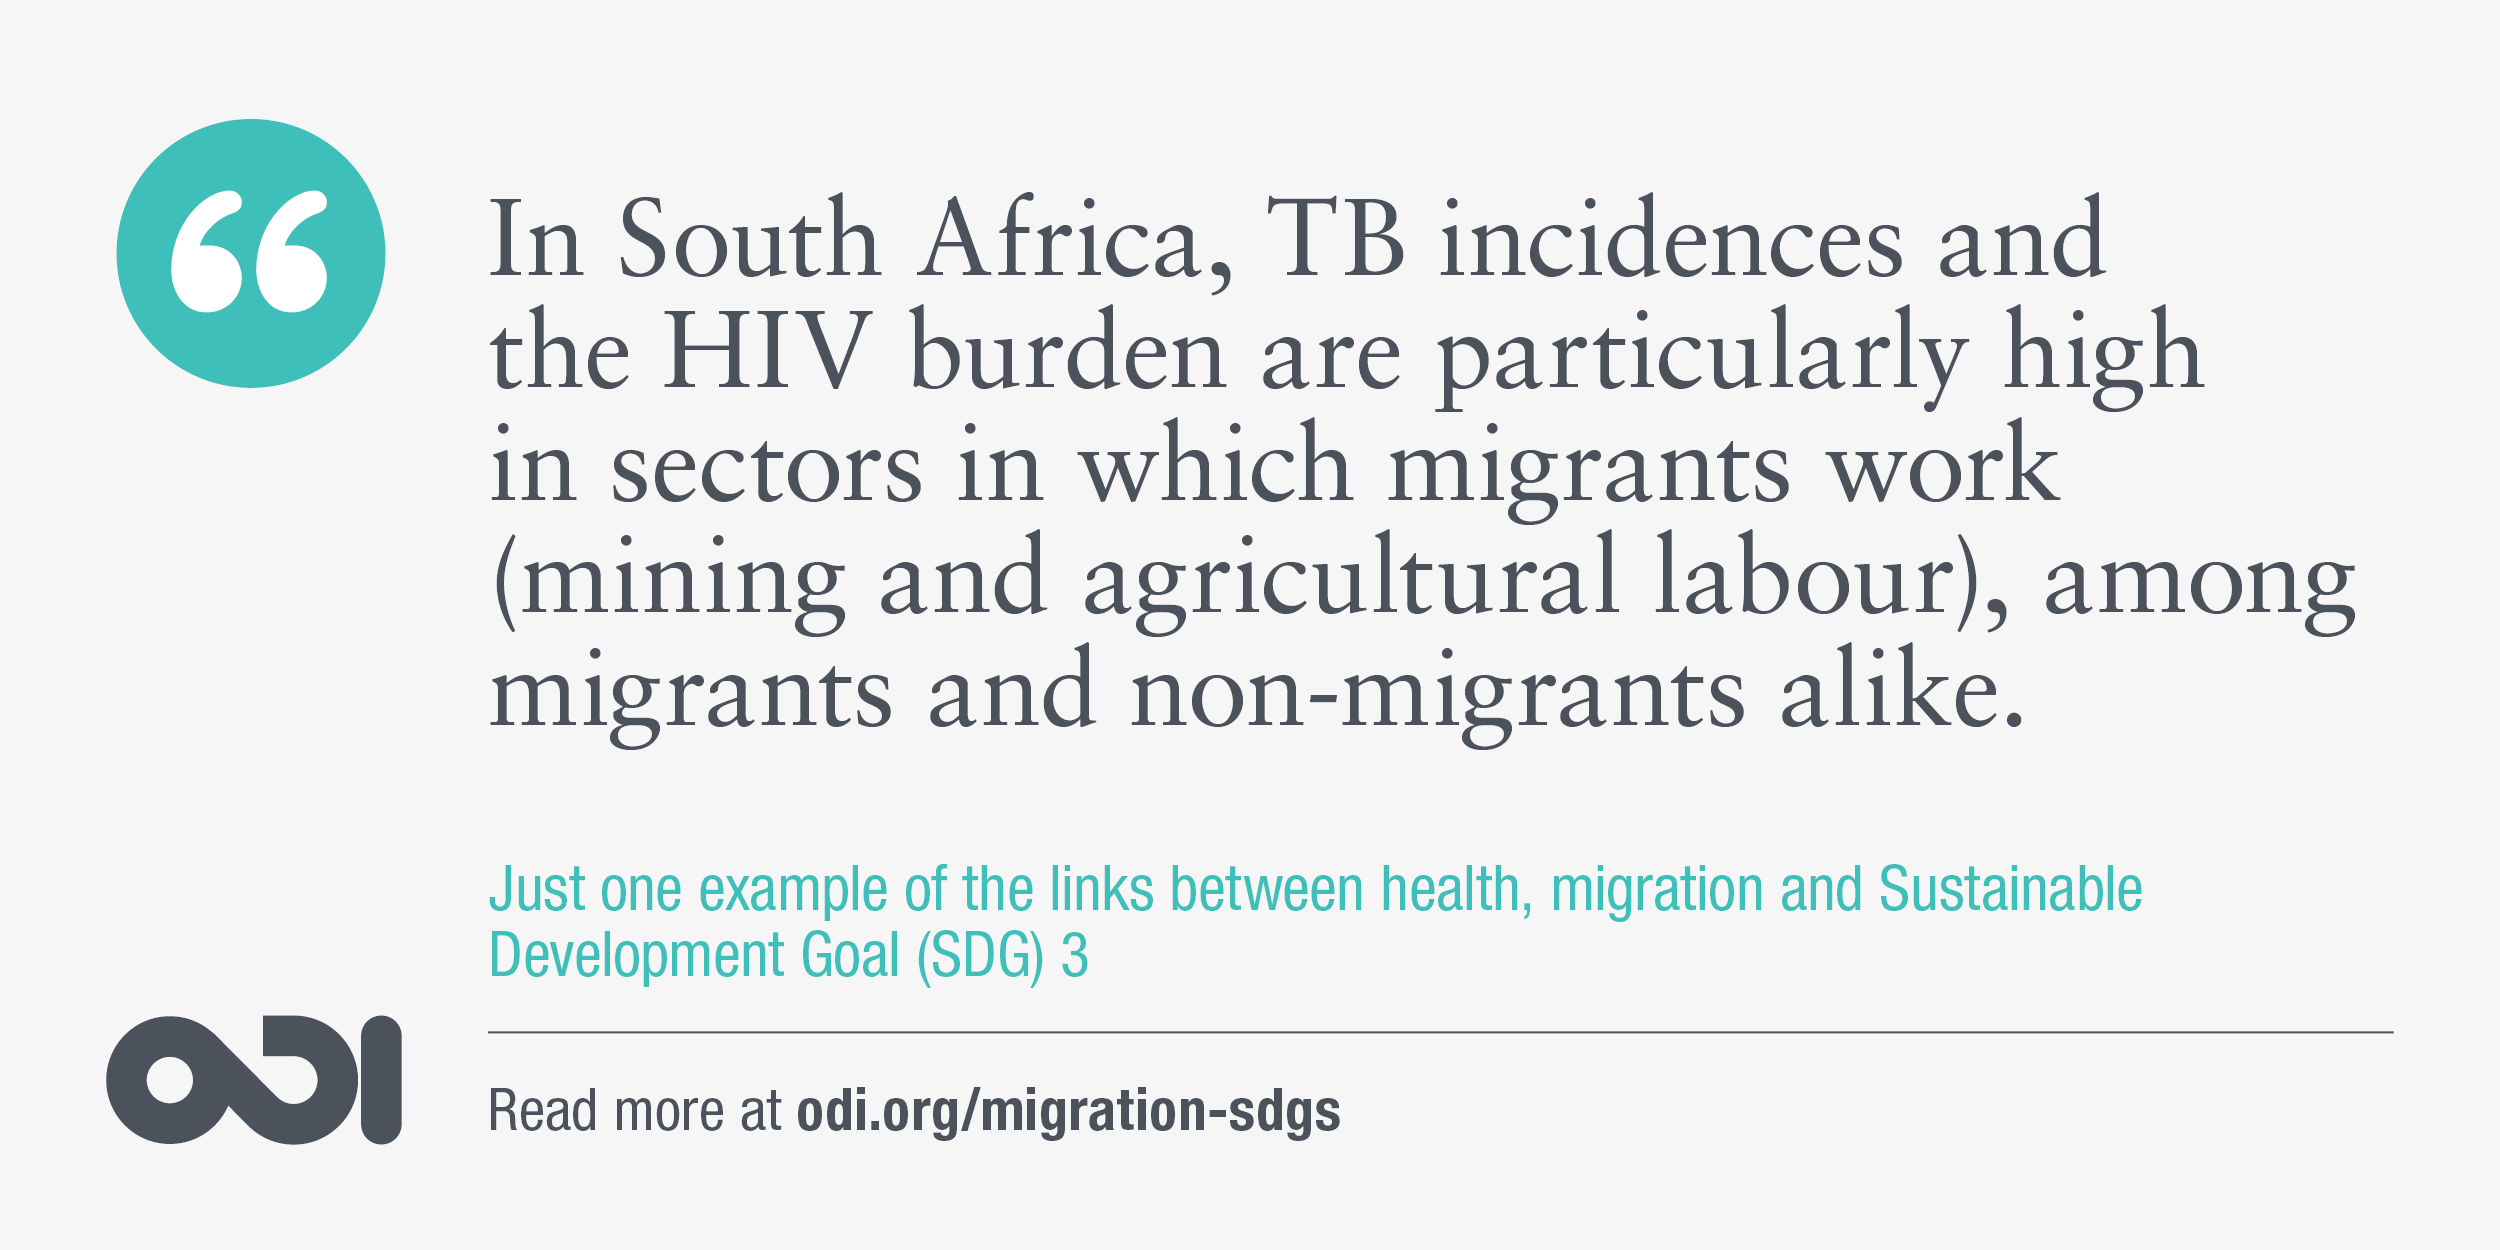 The links between health, migration and SDG 3.